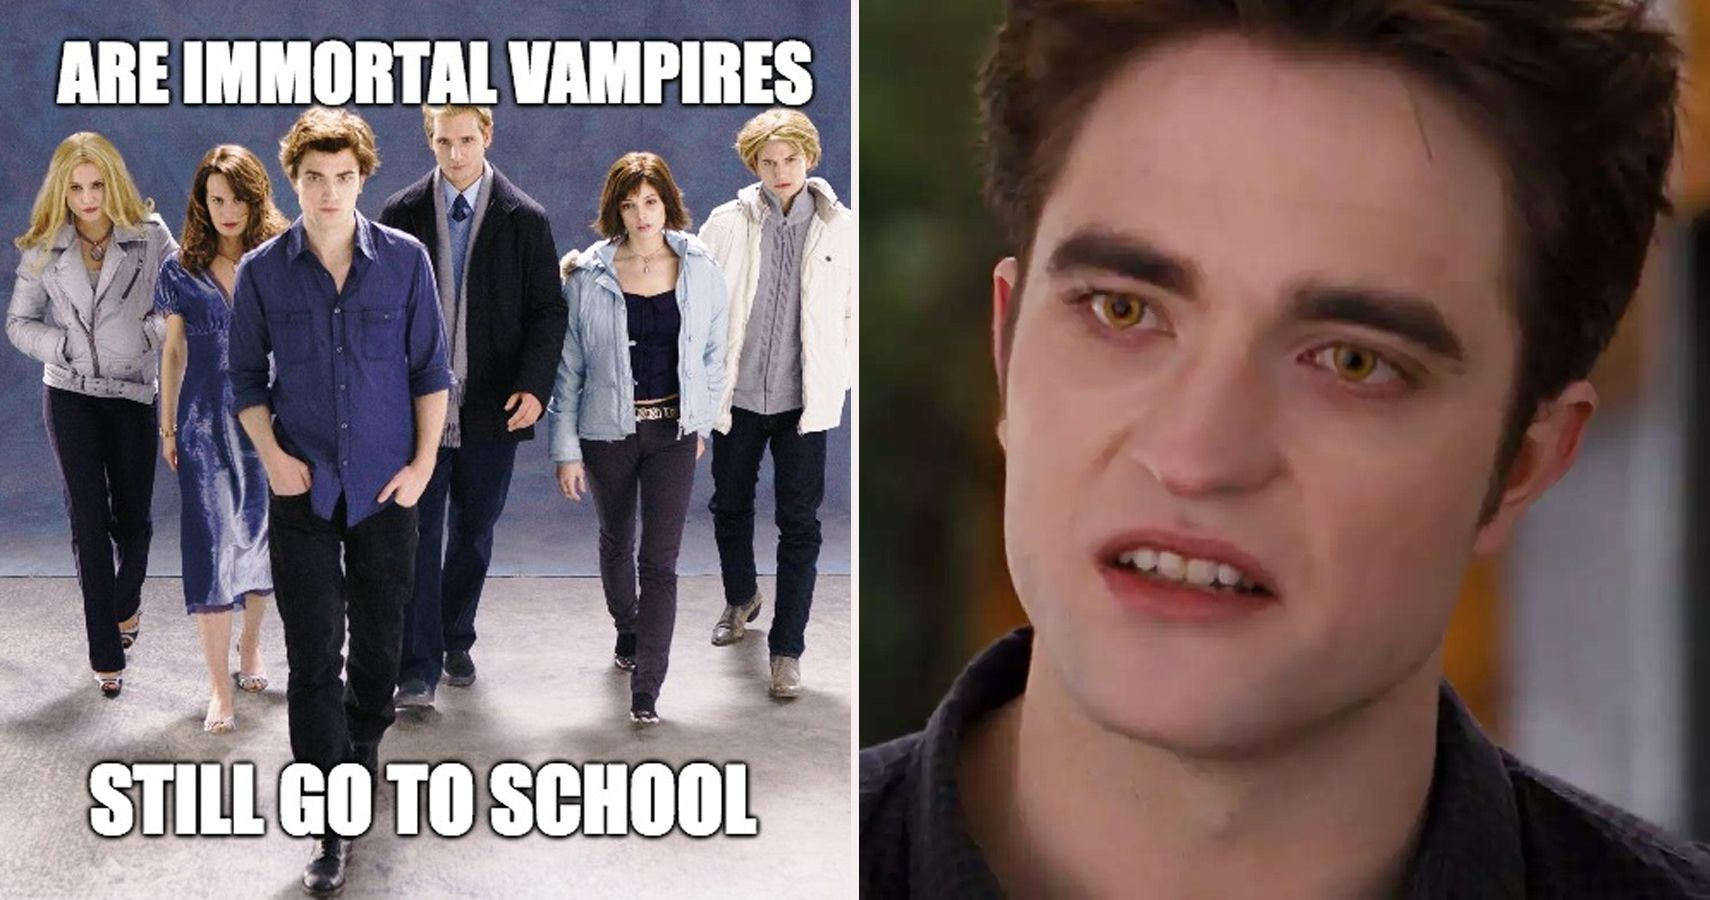 Sparkling Vampires: 25 Things About Twilight That Make No Sense